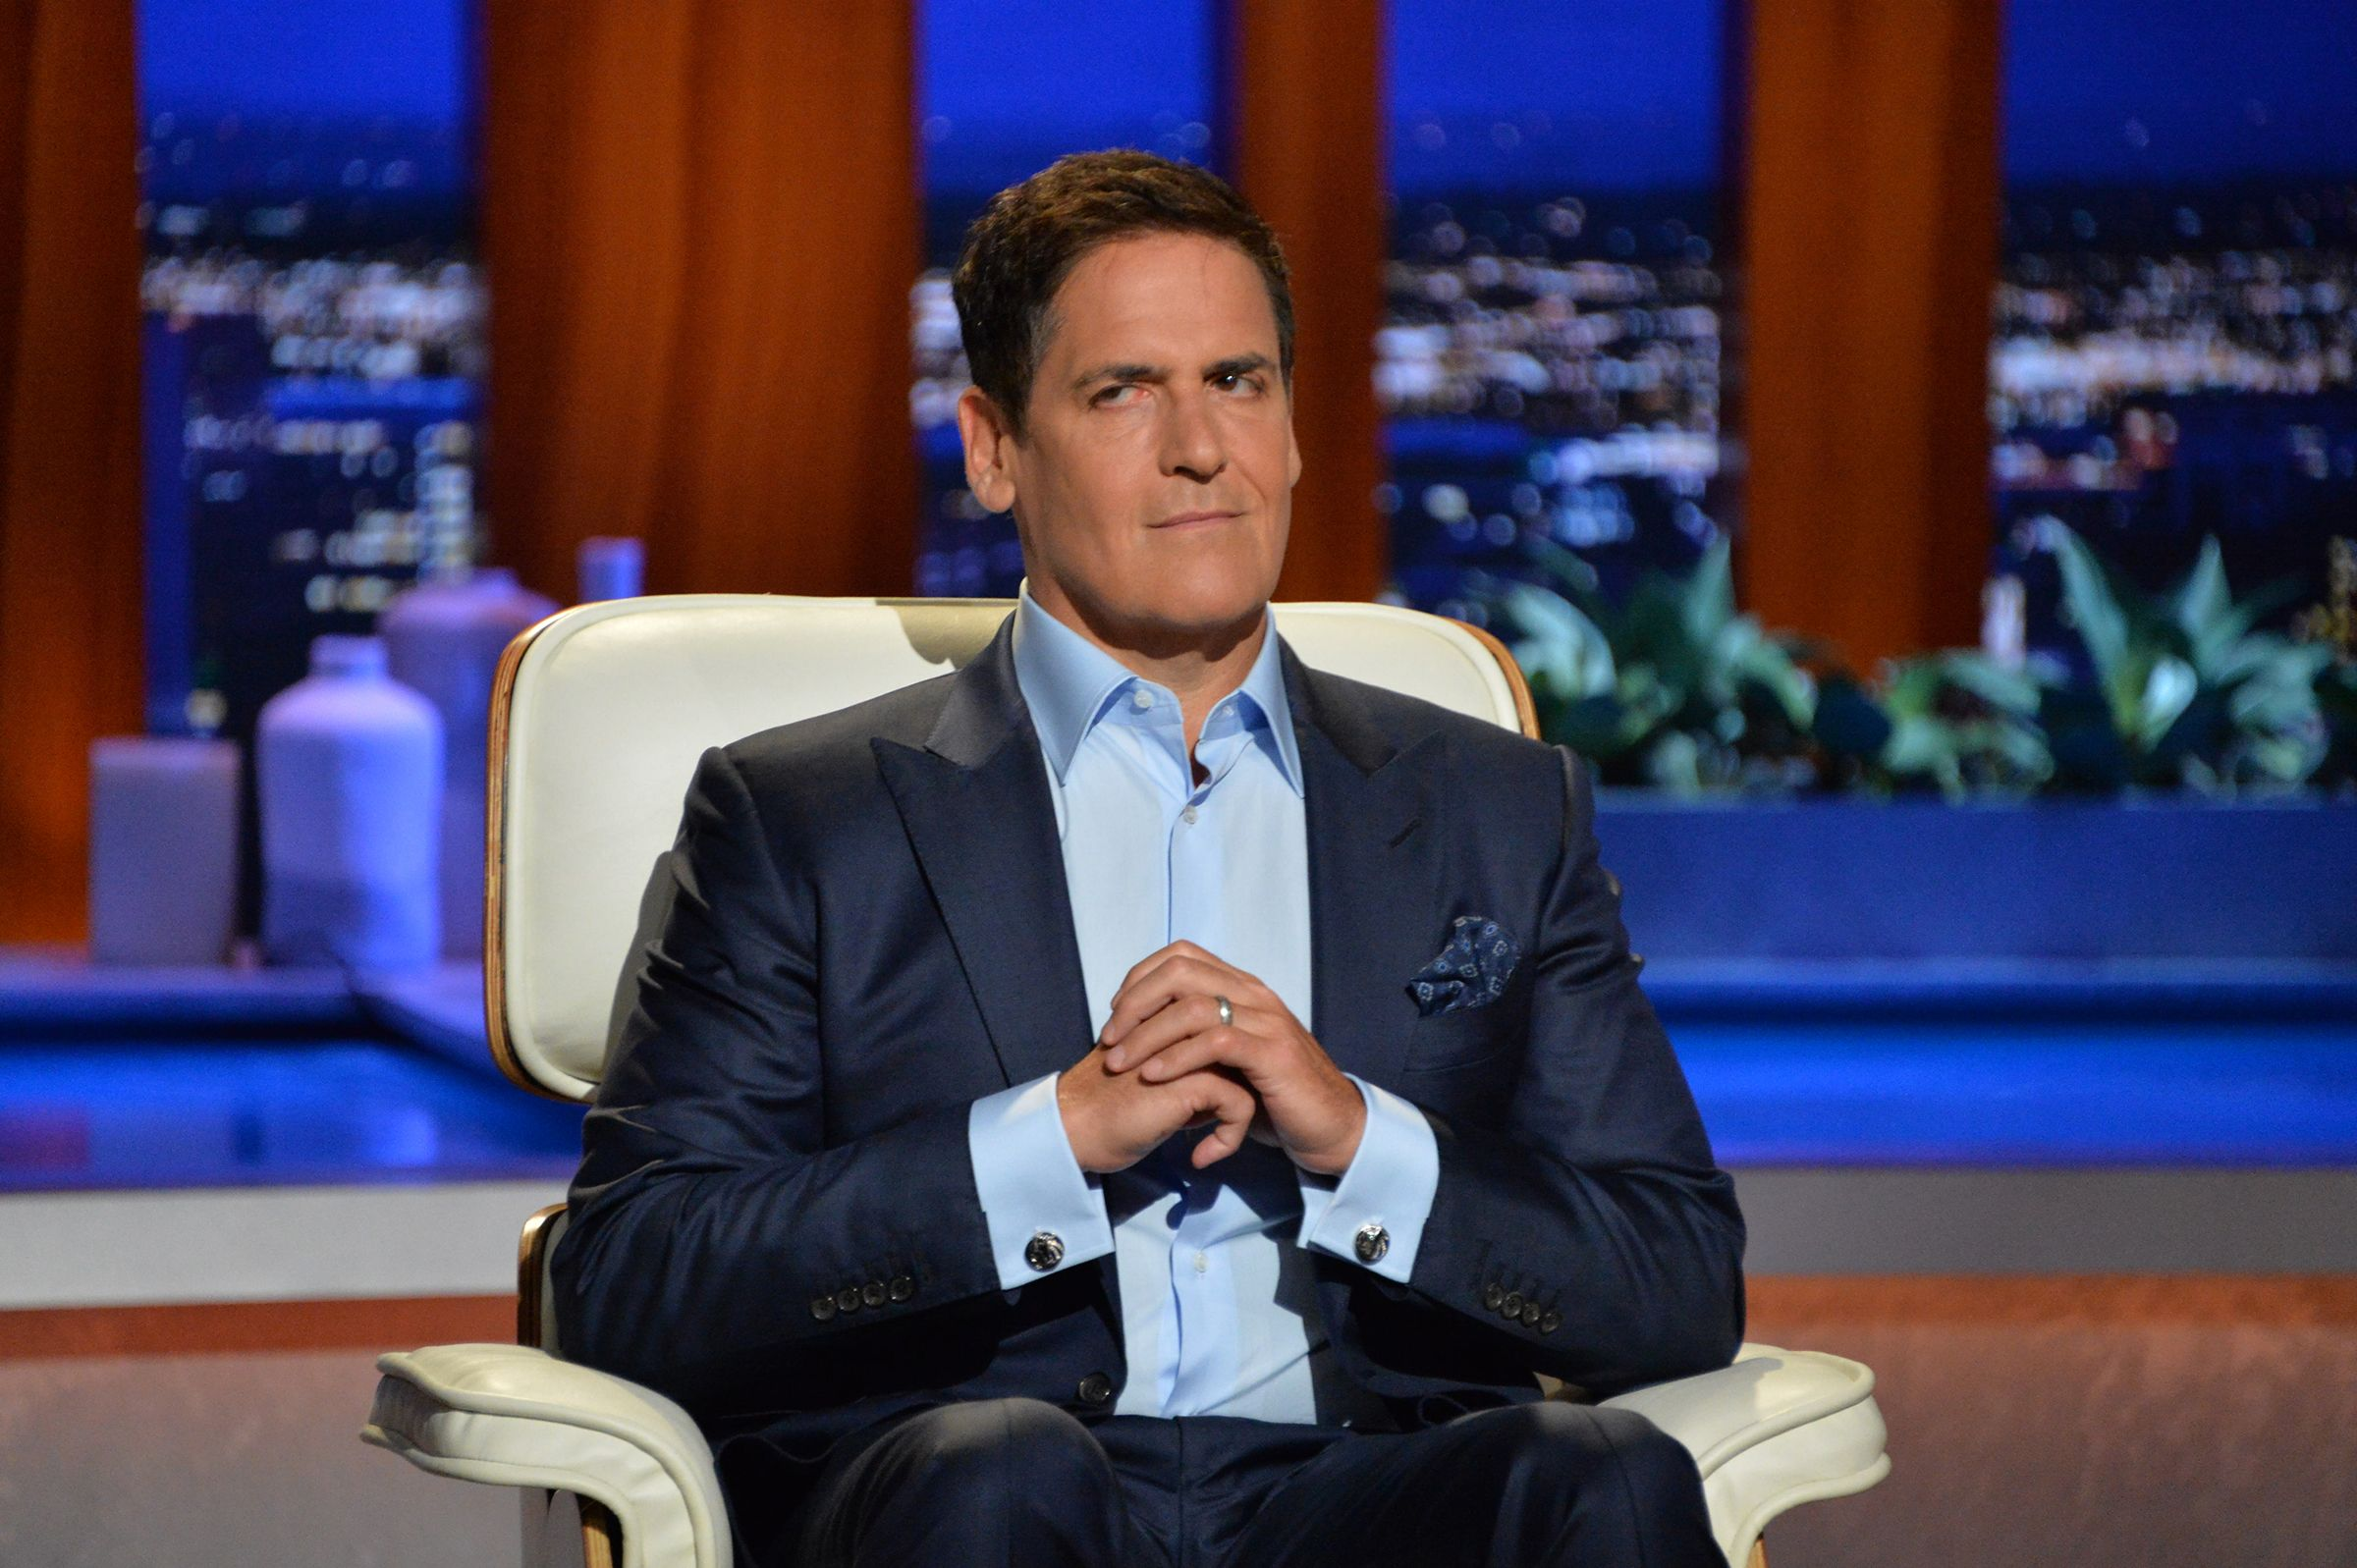 'Shark Tank' Star Mark Cuban Claims His Kids Can Make $40 an Hour Using This One Skill